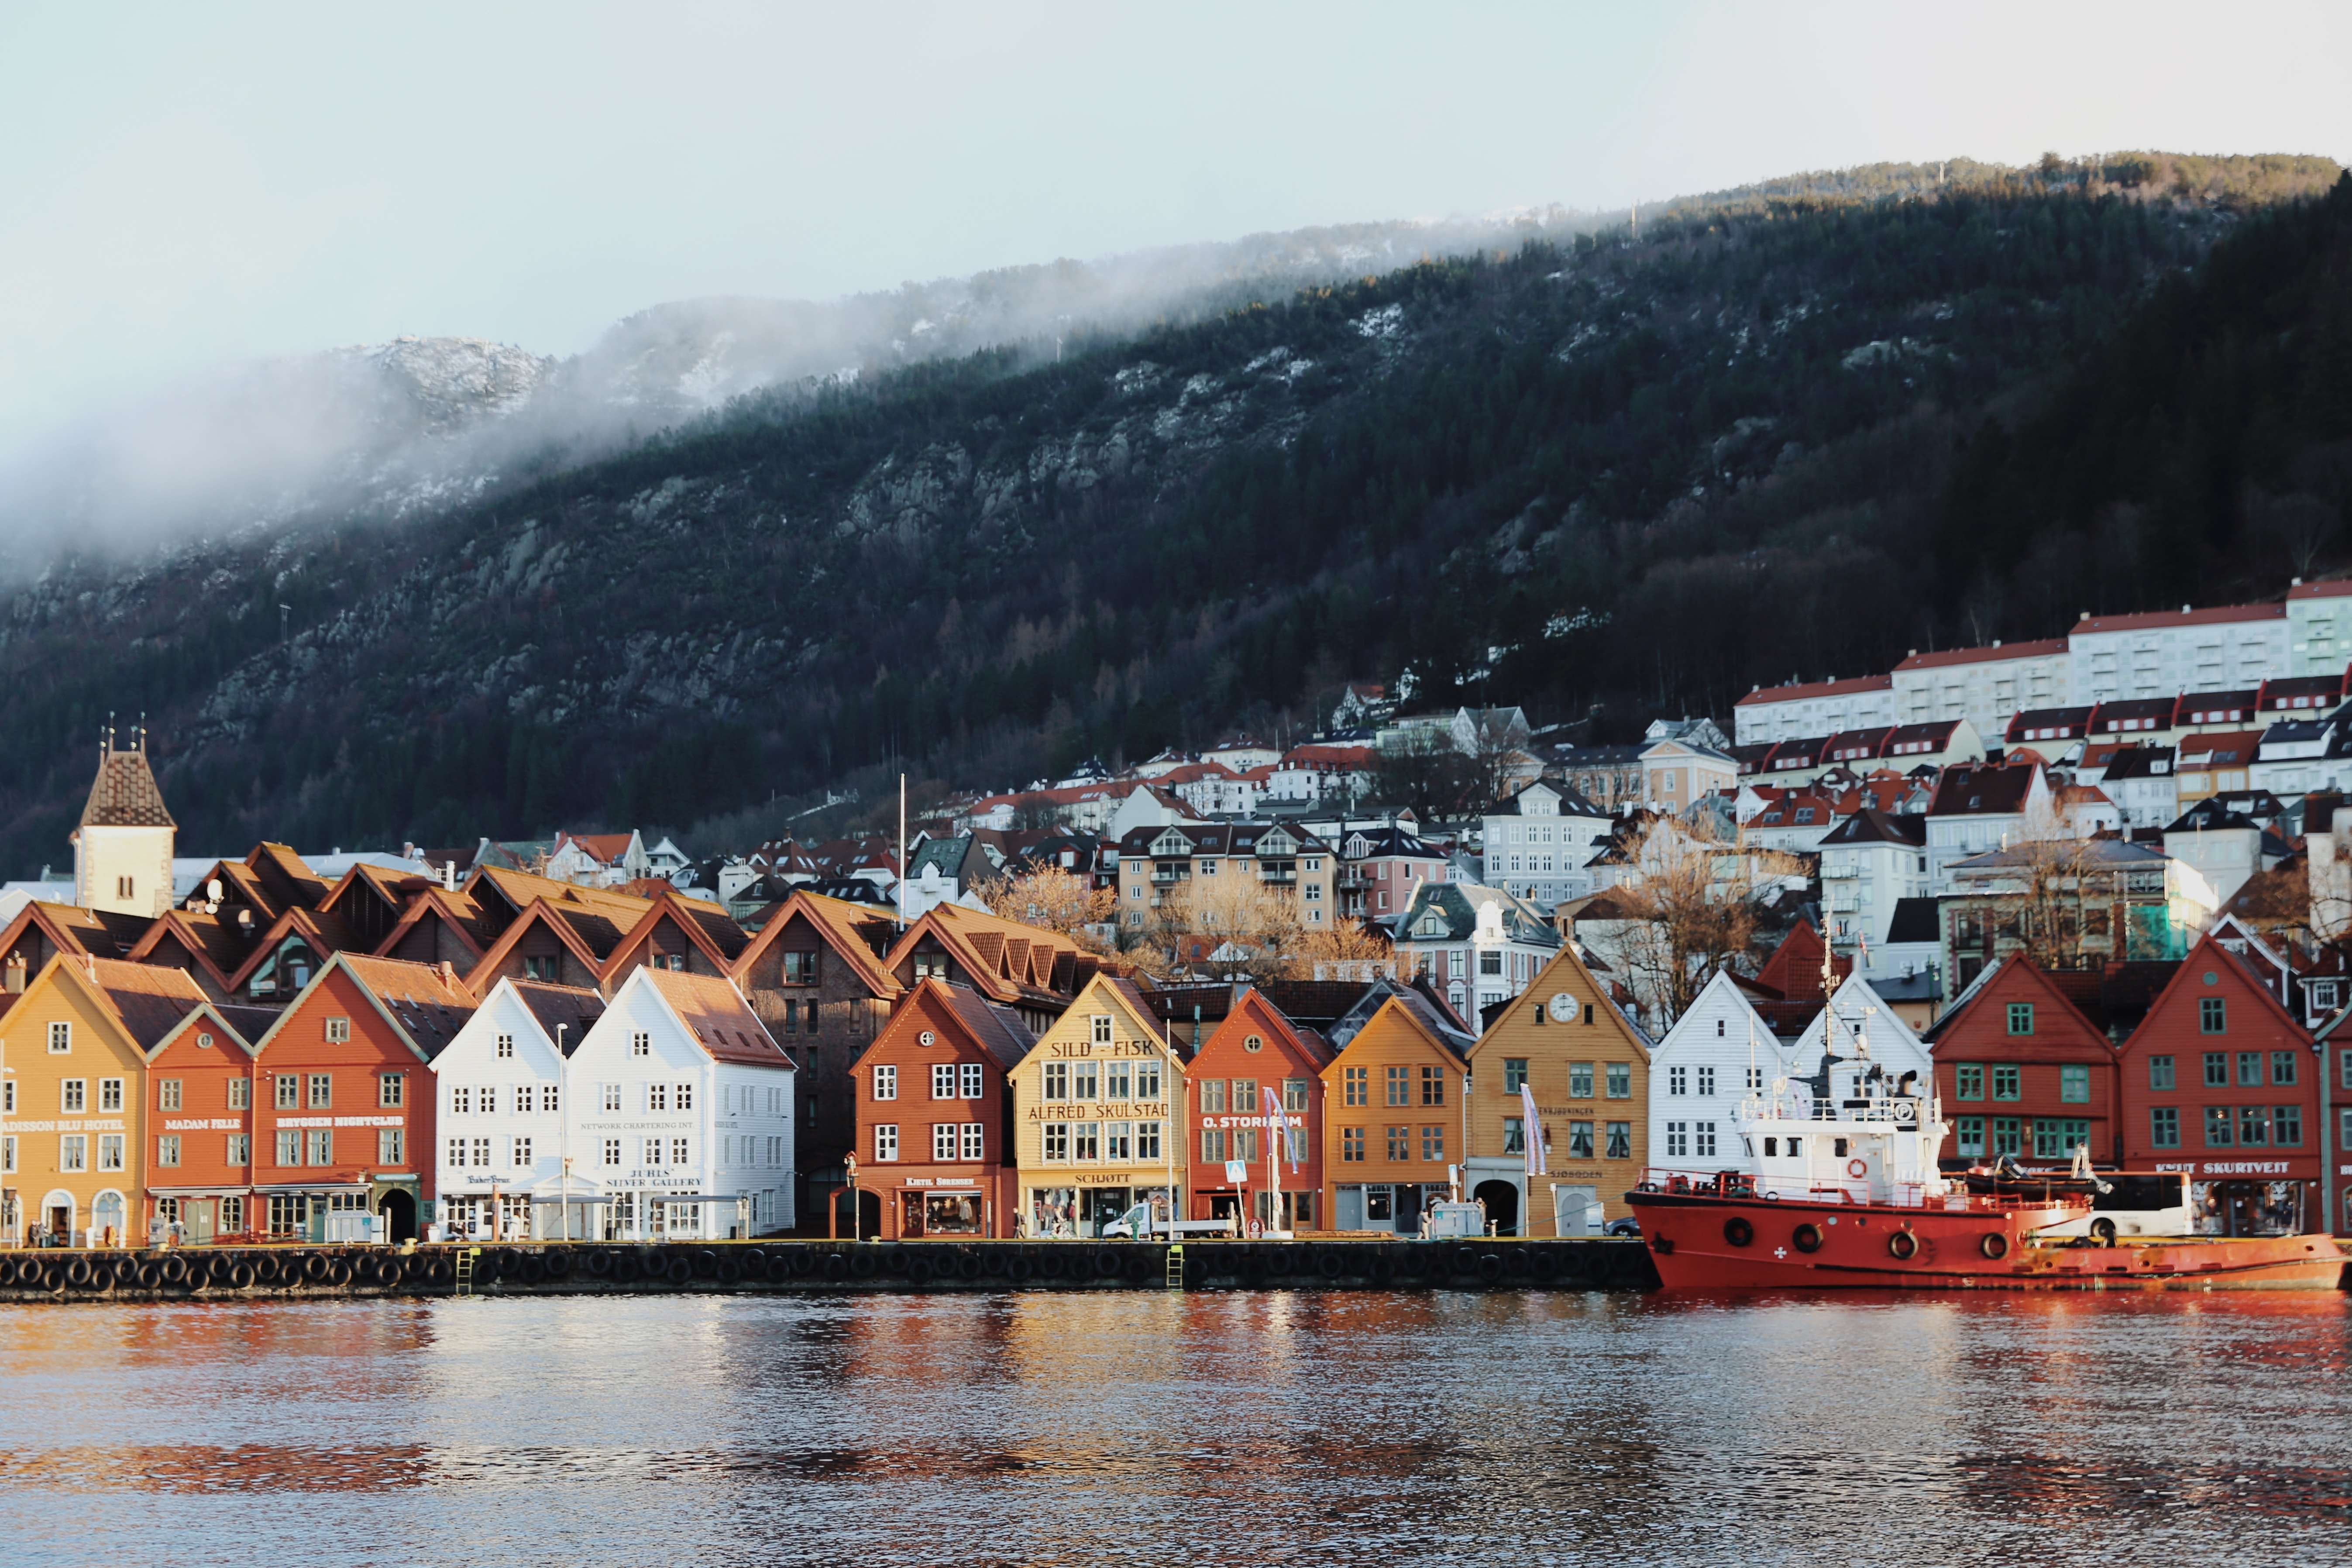 Stavanger Photo by MAO YUQING